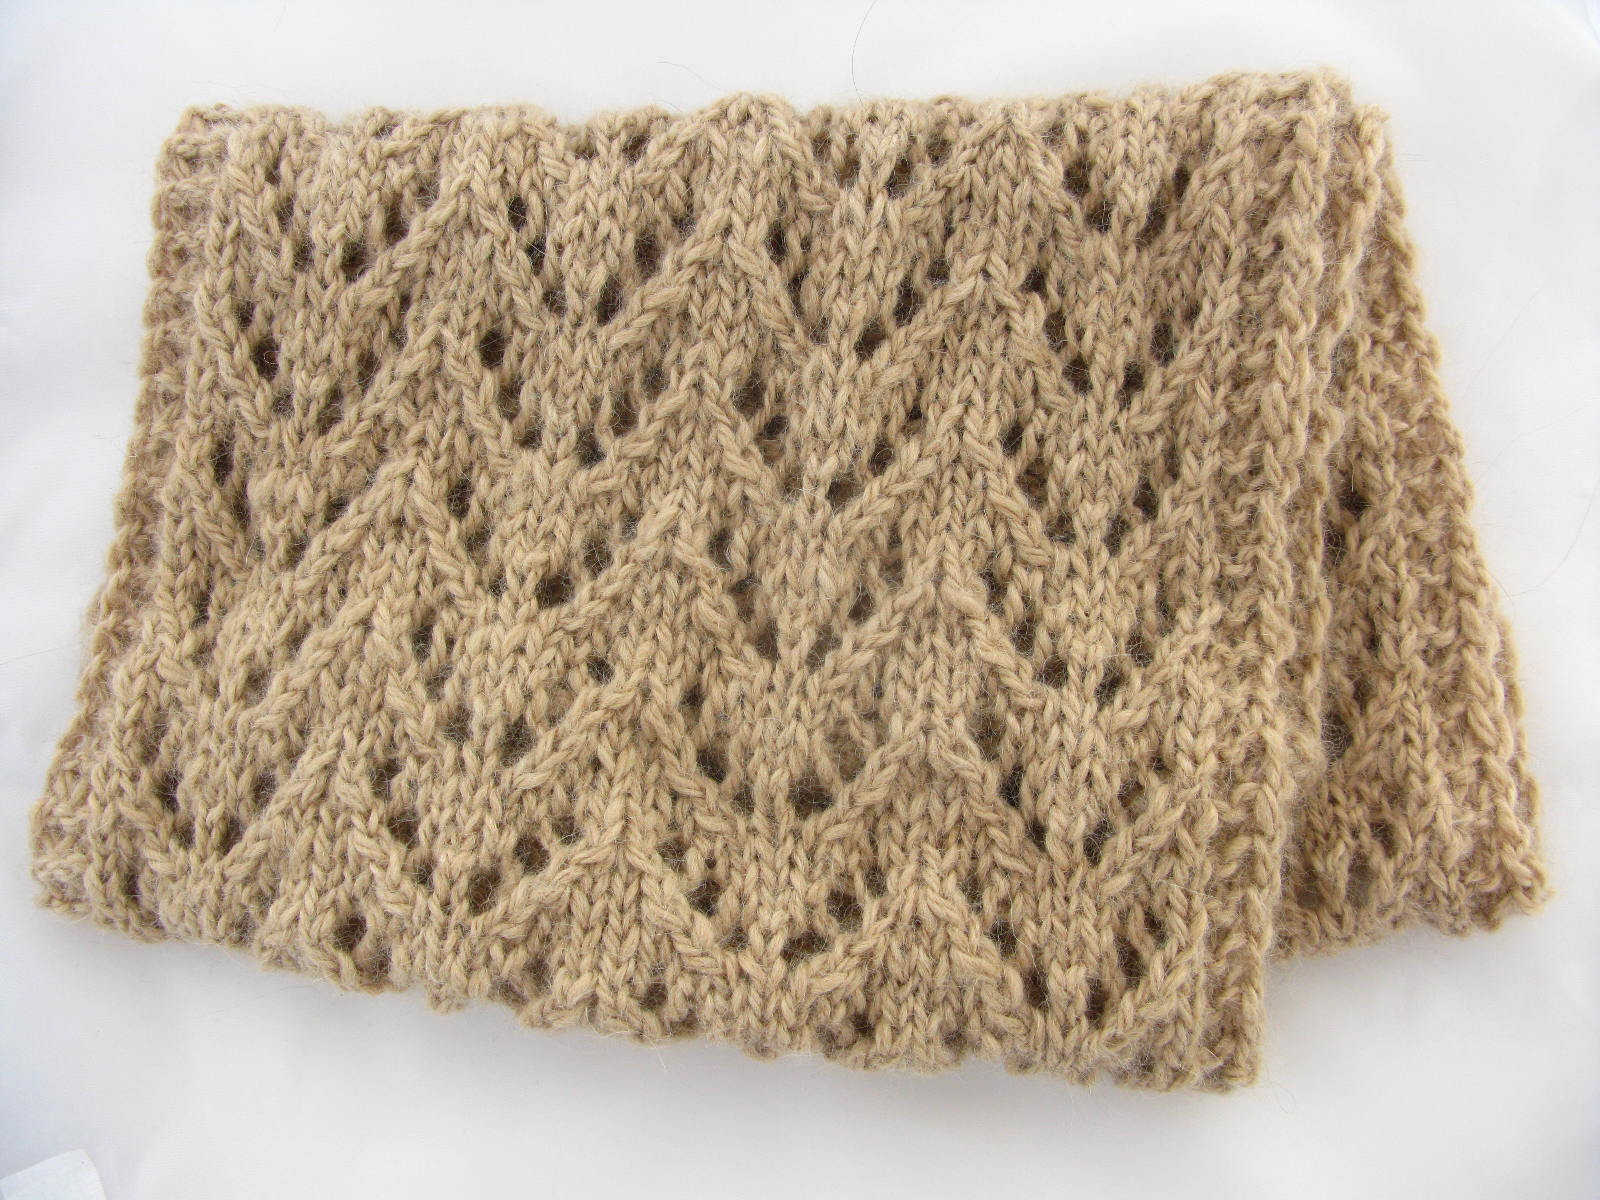 Knitting Patterns | Caora Fibres | Page 2